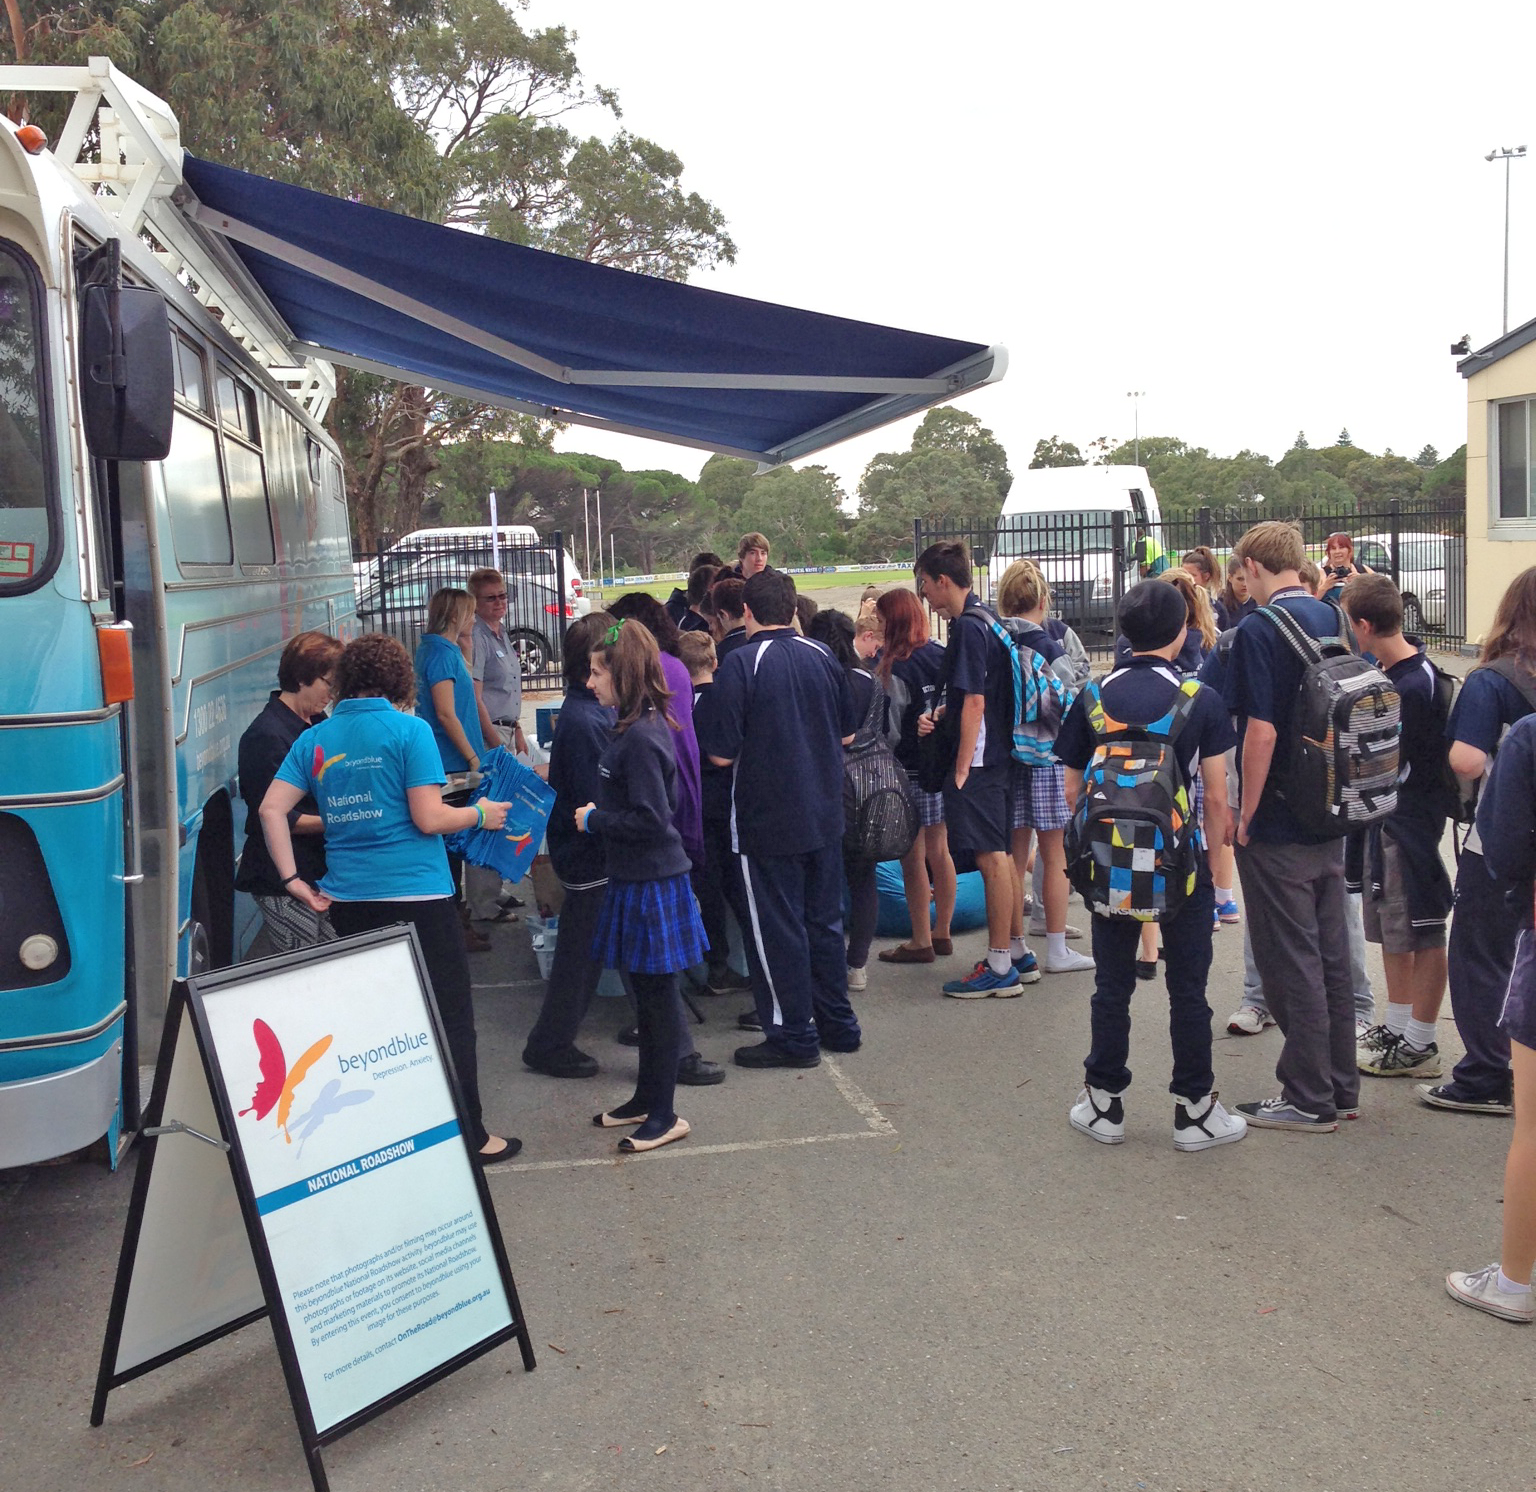 Chatting with students at Victor Harbor High School.